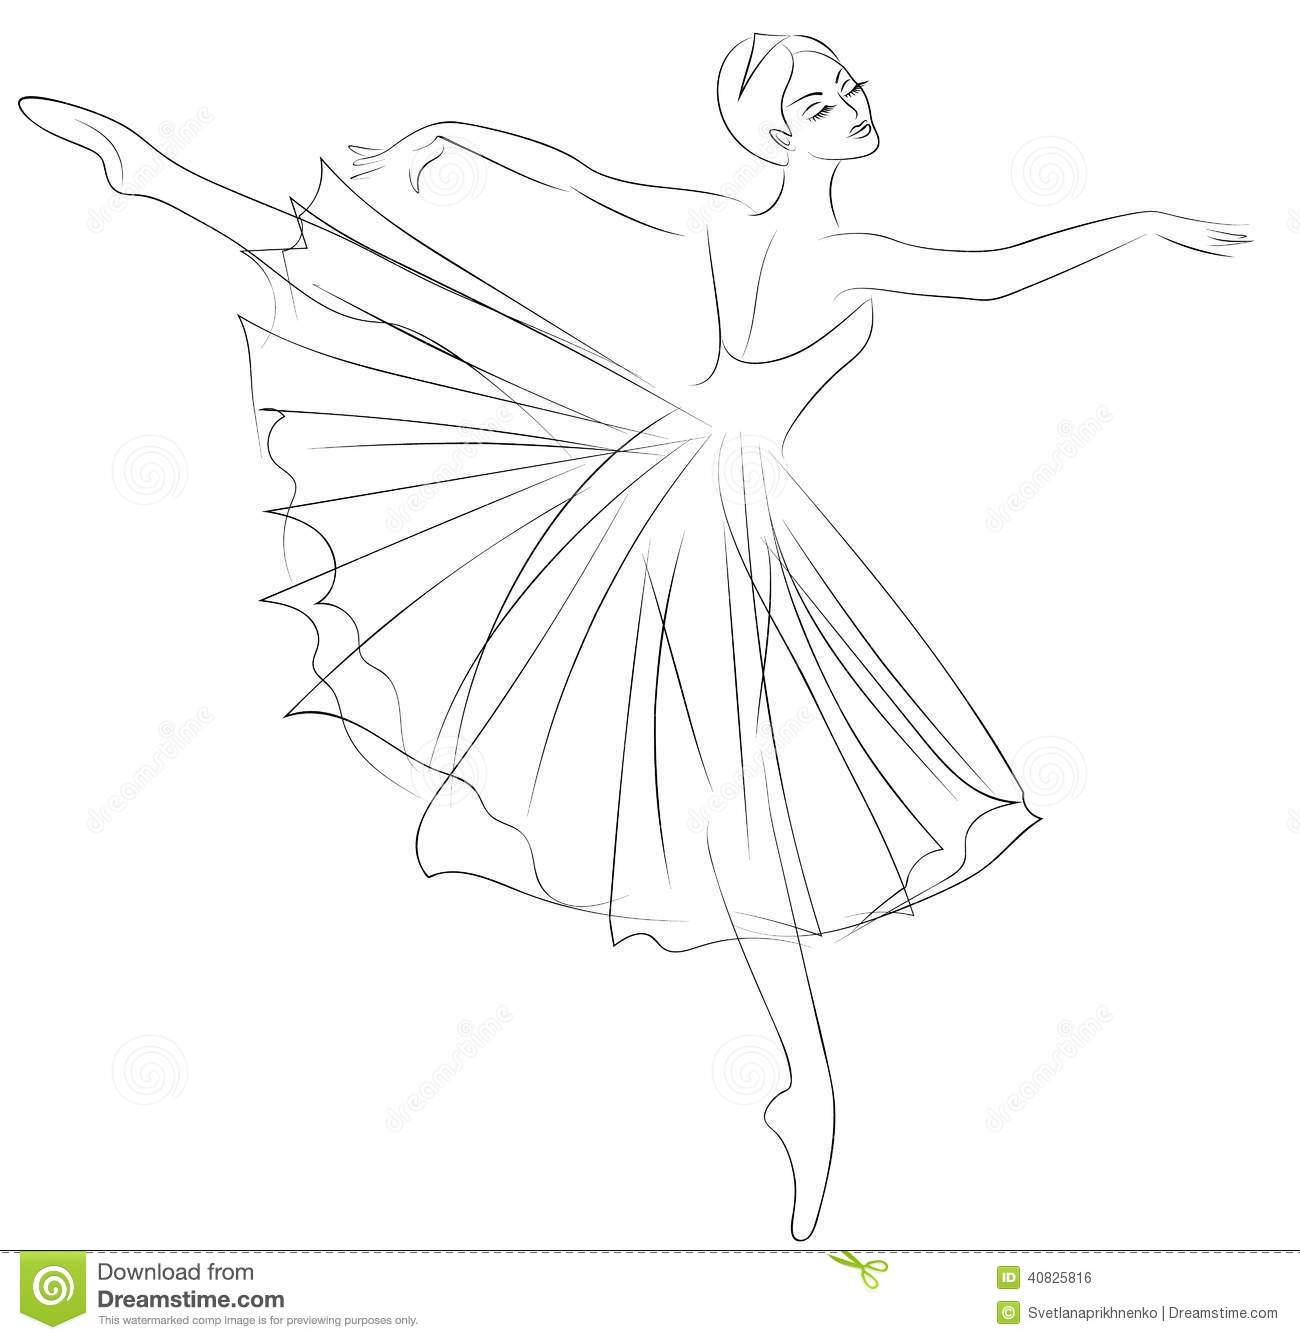 Ballerina Stock Vector. Illustration Of Pose Ballerina - 40825816